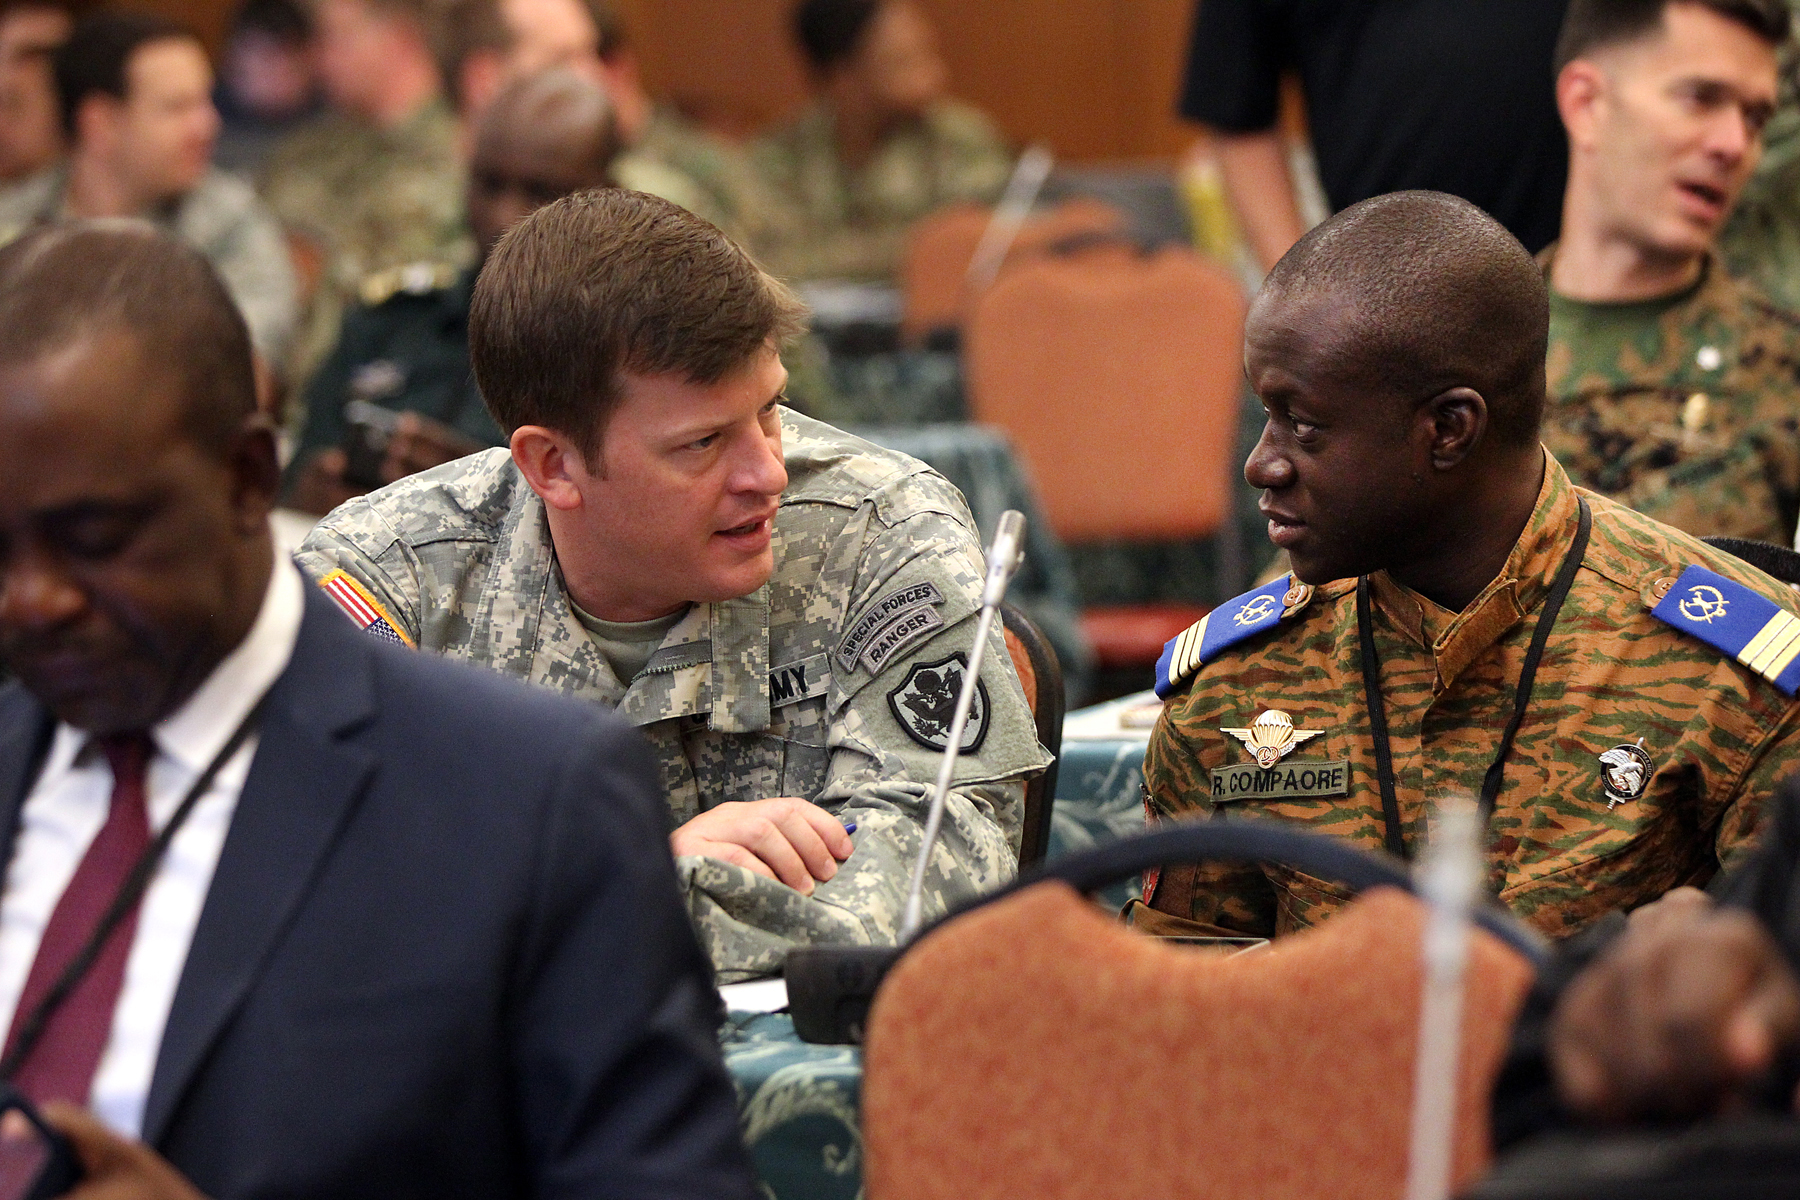 Special Operations Command - Africa participants share ideas during the SOCAFRICA Commander's Conference held in Garmisch, Germany from November 16 – 20. The Commander's Conference built on the lessons of the previous week when SOCAFRICA Forward commanders led regional breakout sessions to study threat groups and understand the challenges facing African militaries. (Special Operations Command Africa photo by Sgt. 1st Class Anthony L. Taylor/Released)